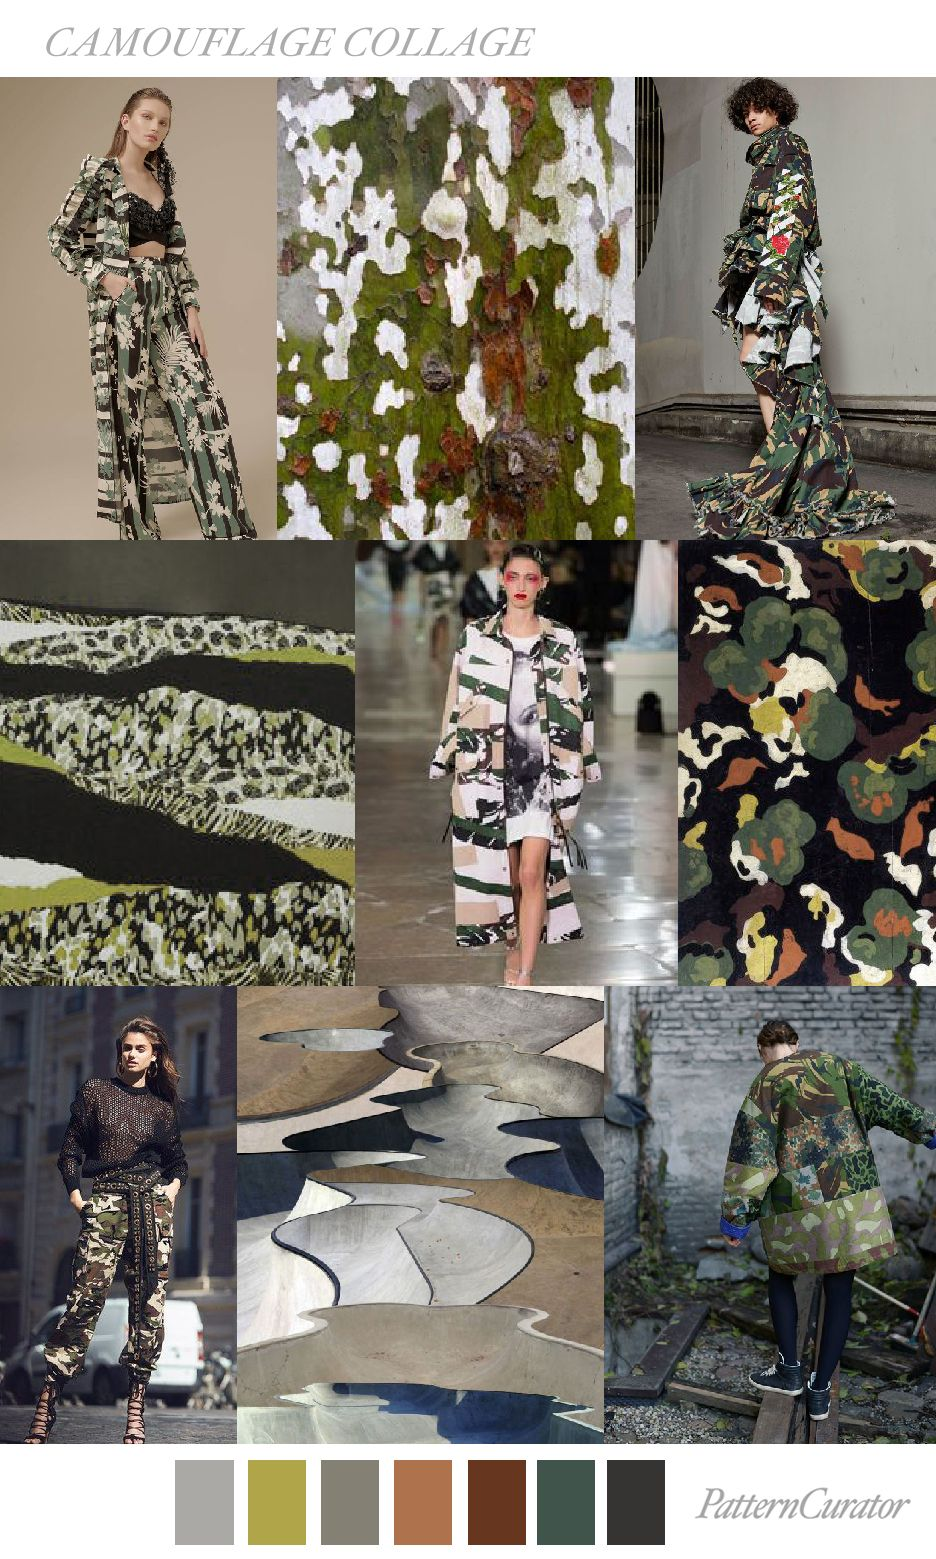 CAMOUFLAGE COLLAGE by PatternCurator | Colors Mode ...